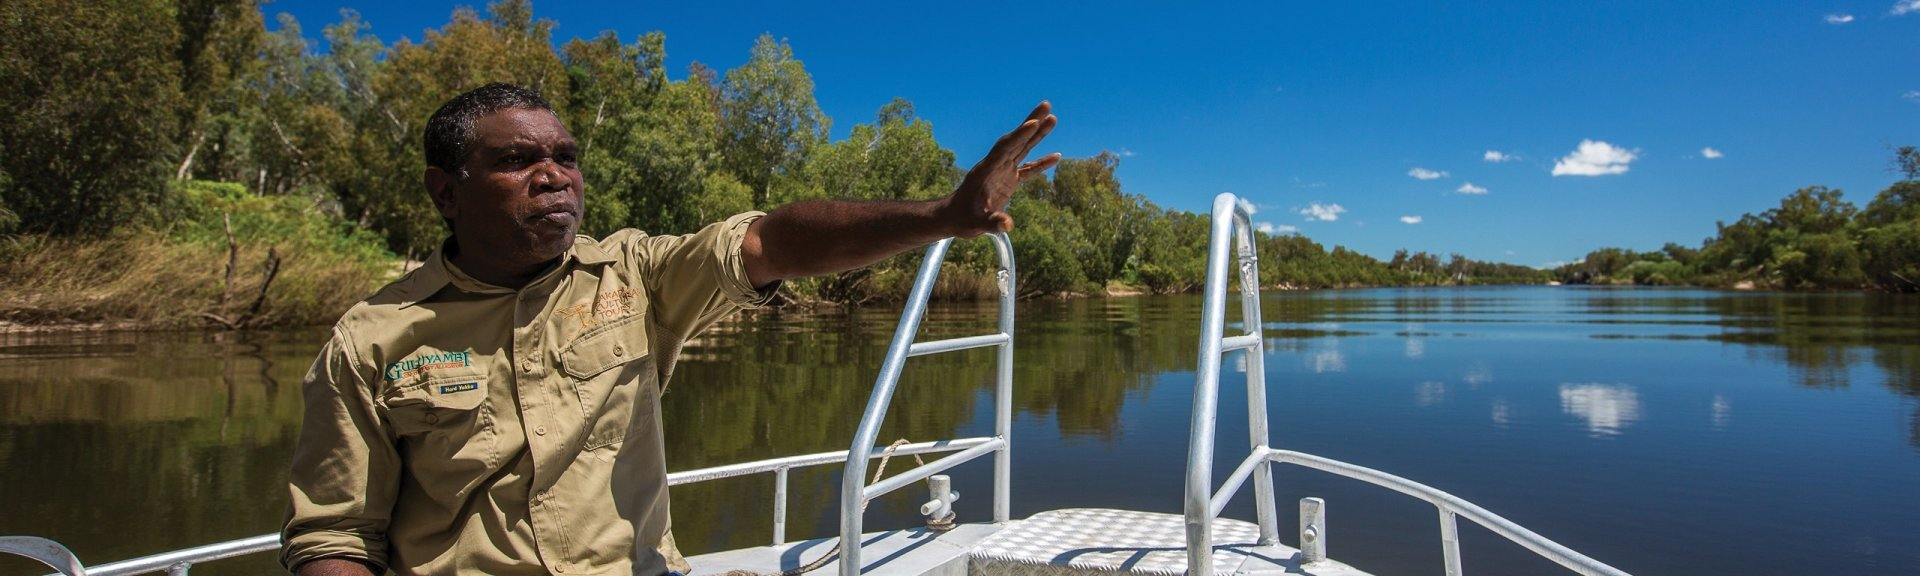 Guide on the Guluyambi River Cruise